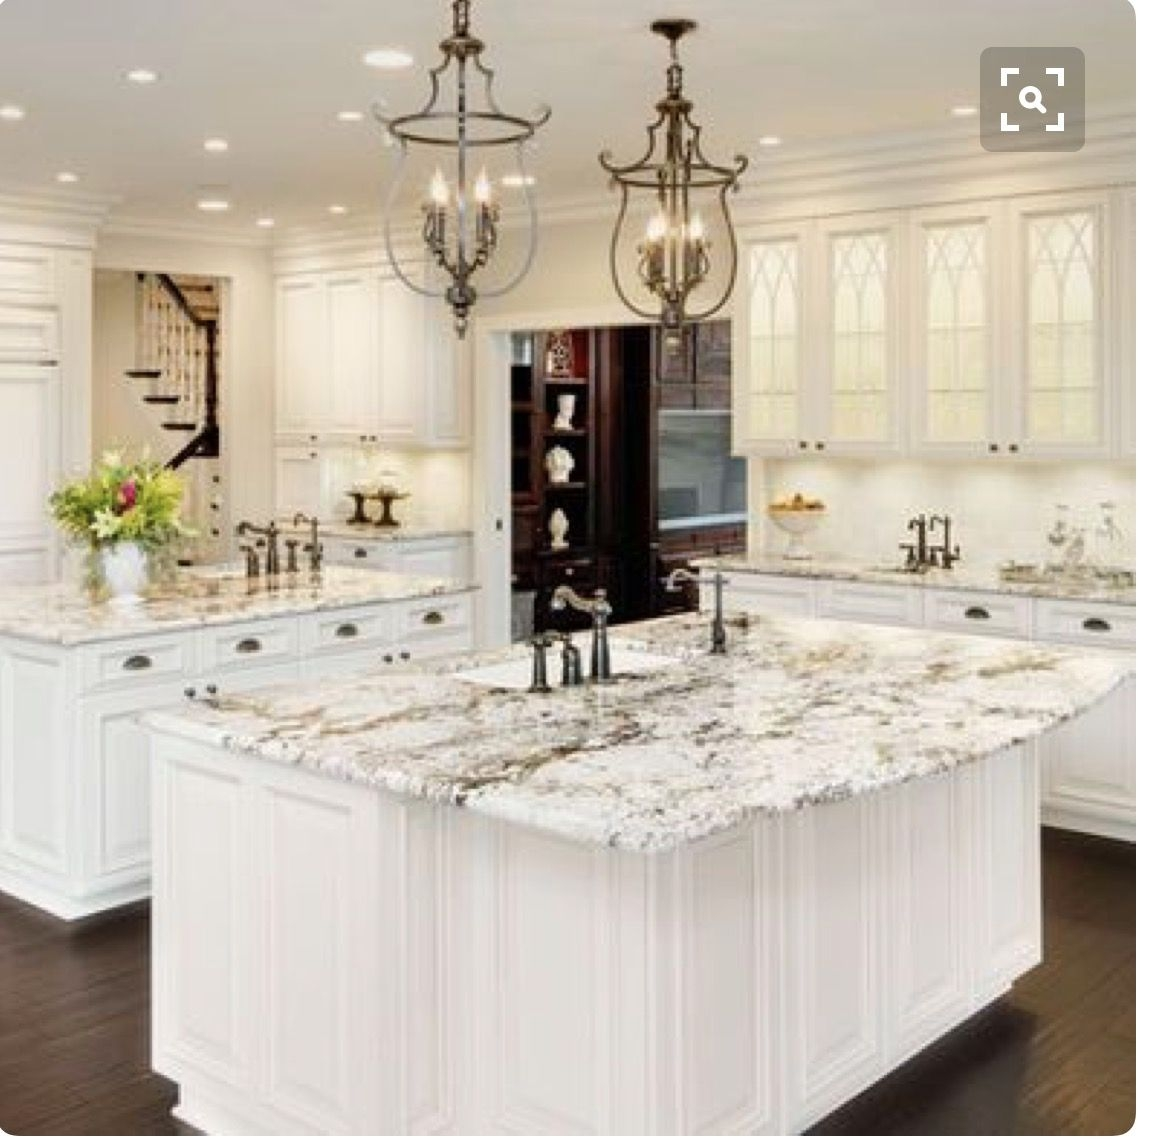 Superieur More Or Less Our Exact Kitchen Remodel Plan Bianco Antico